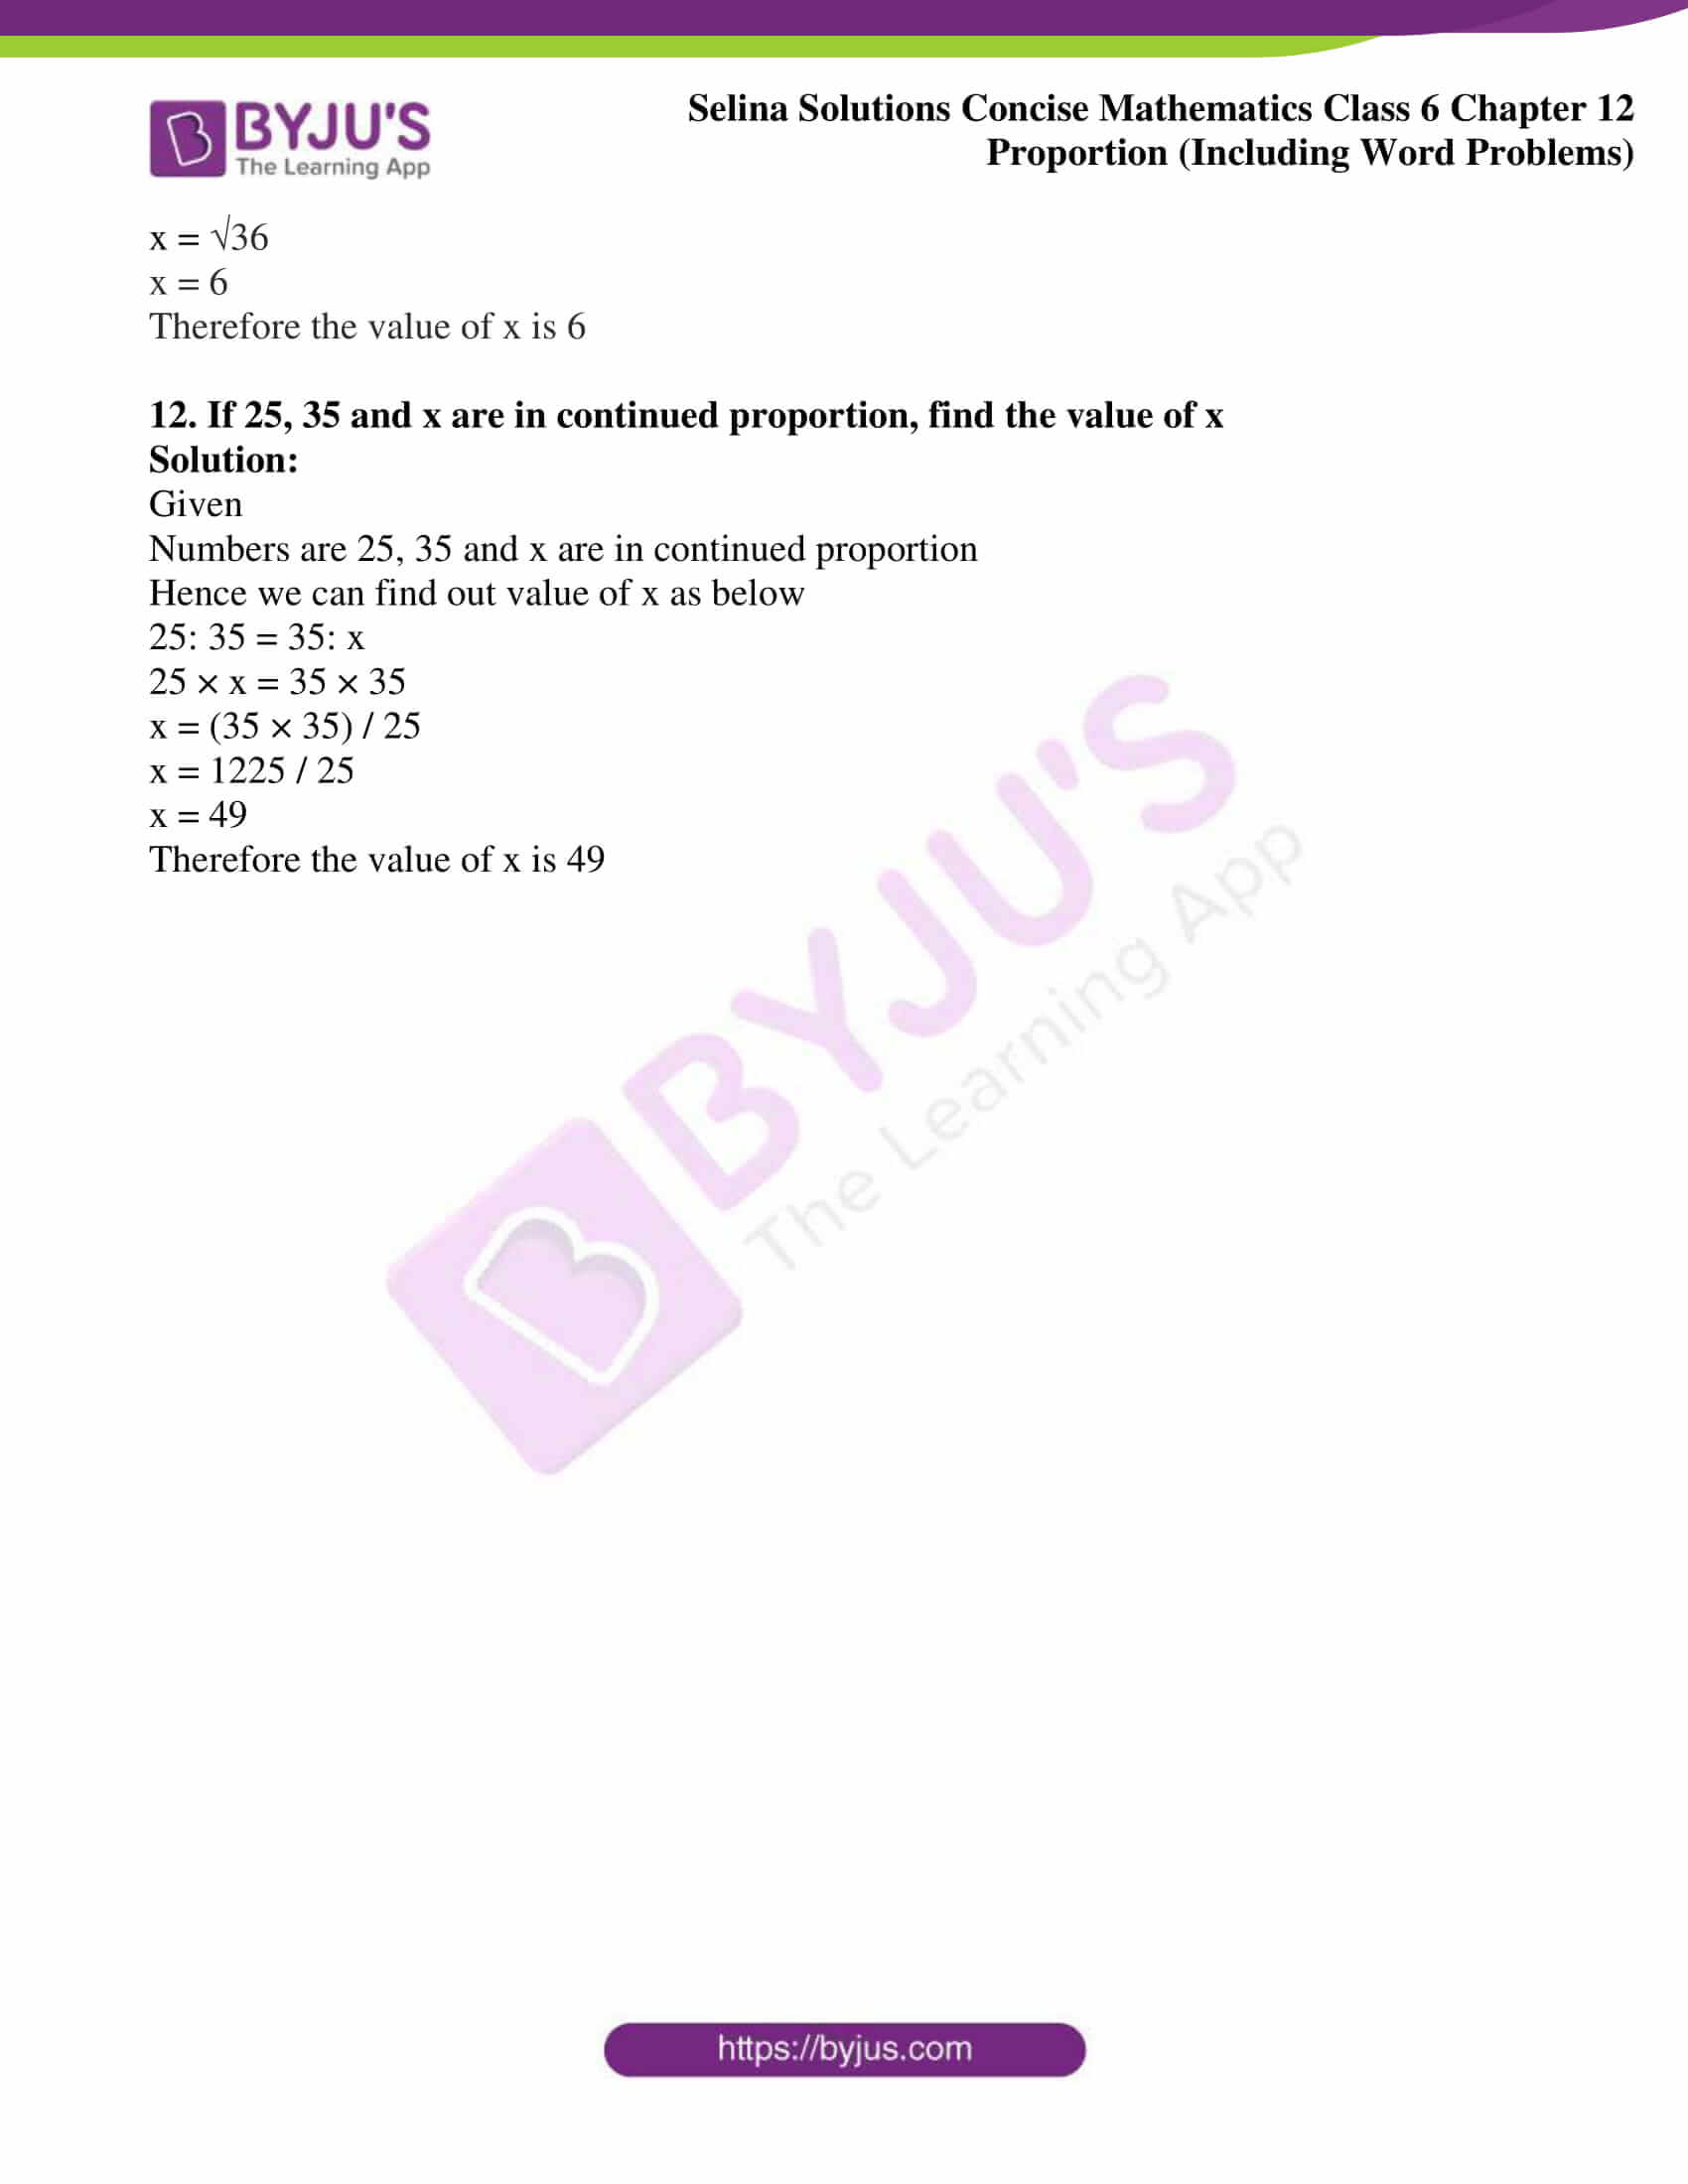 selina solution concise maths class 6 chapter 12 ex c 6